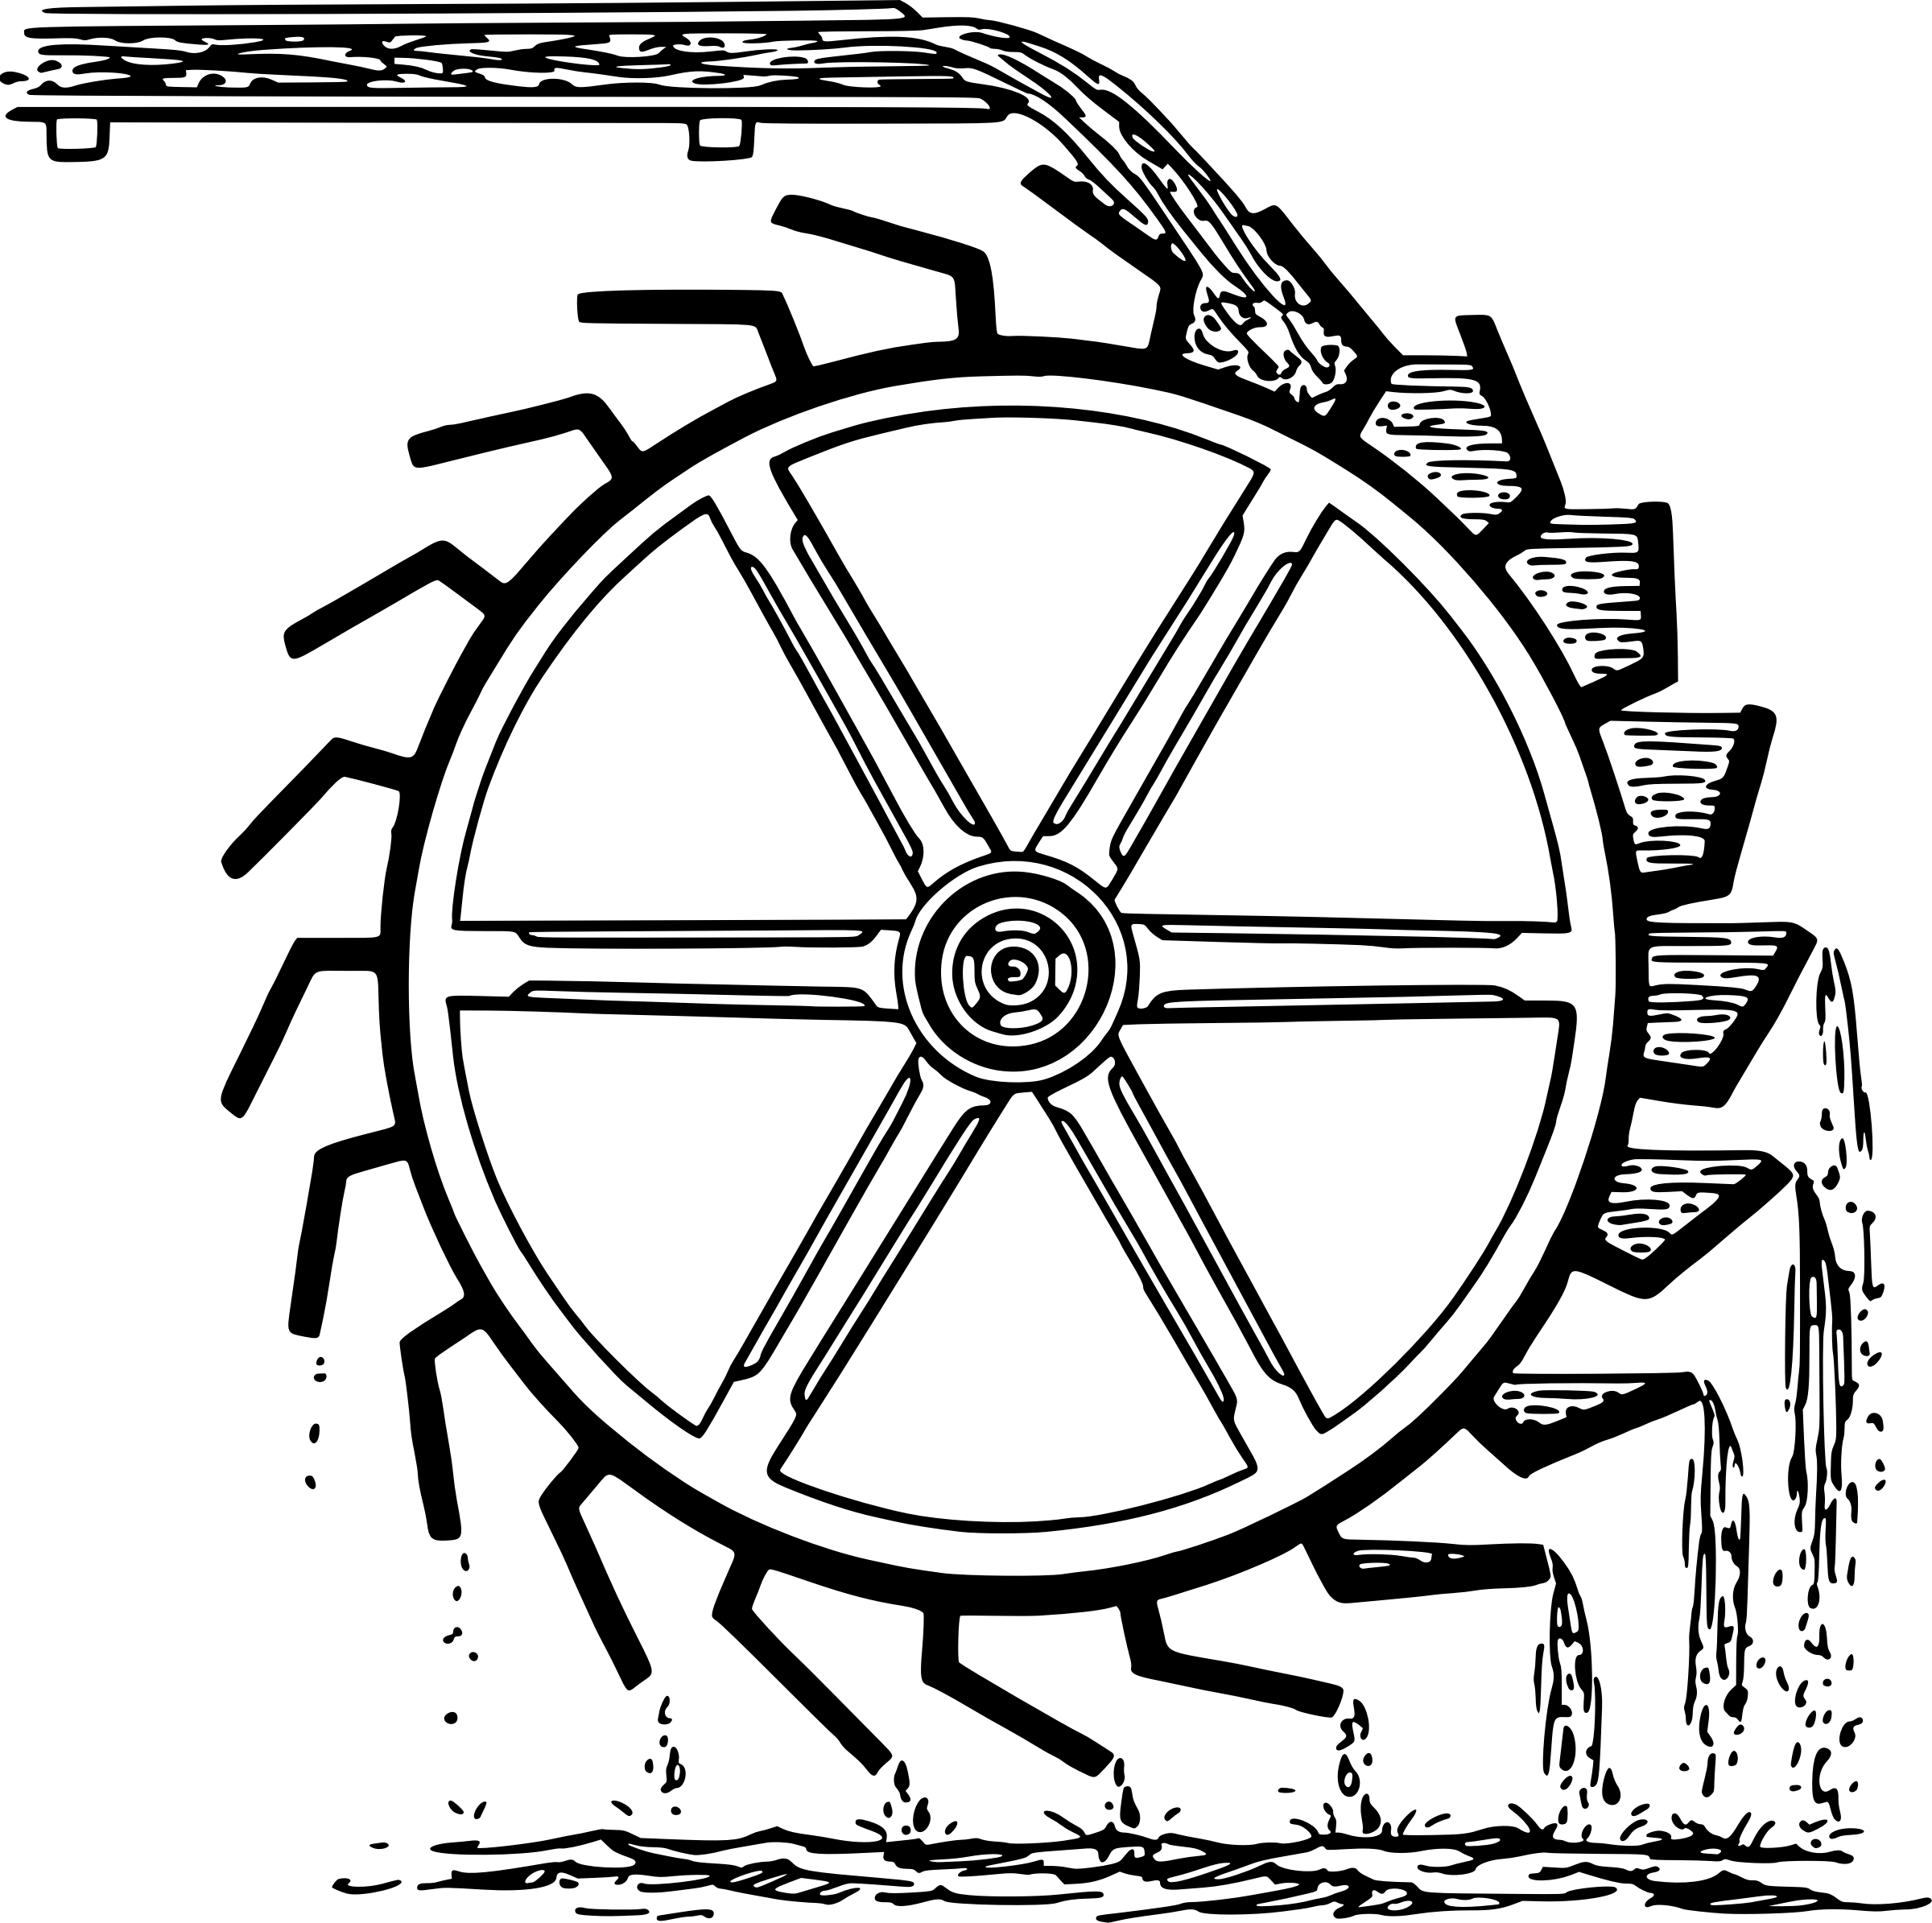 Water Wheel Vector Clipart Image